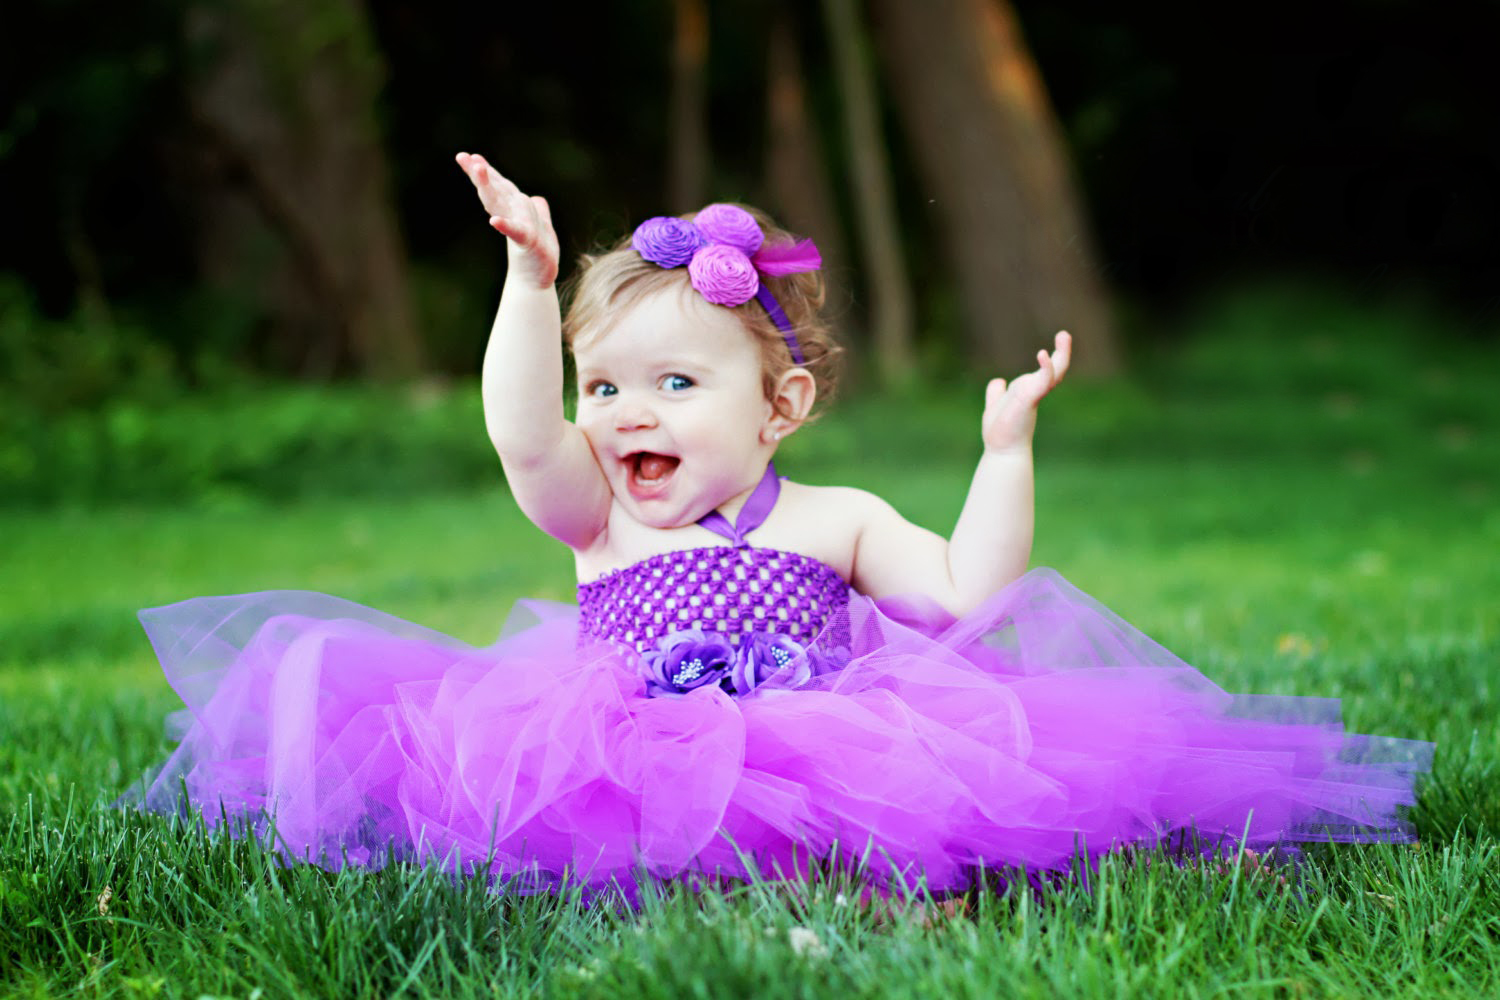 cute Love Baby Wallpaper Hd : Latest cute Baby - Sweet Baby HD Wallpaper in 1080p ~ Super HD Wallpaperss